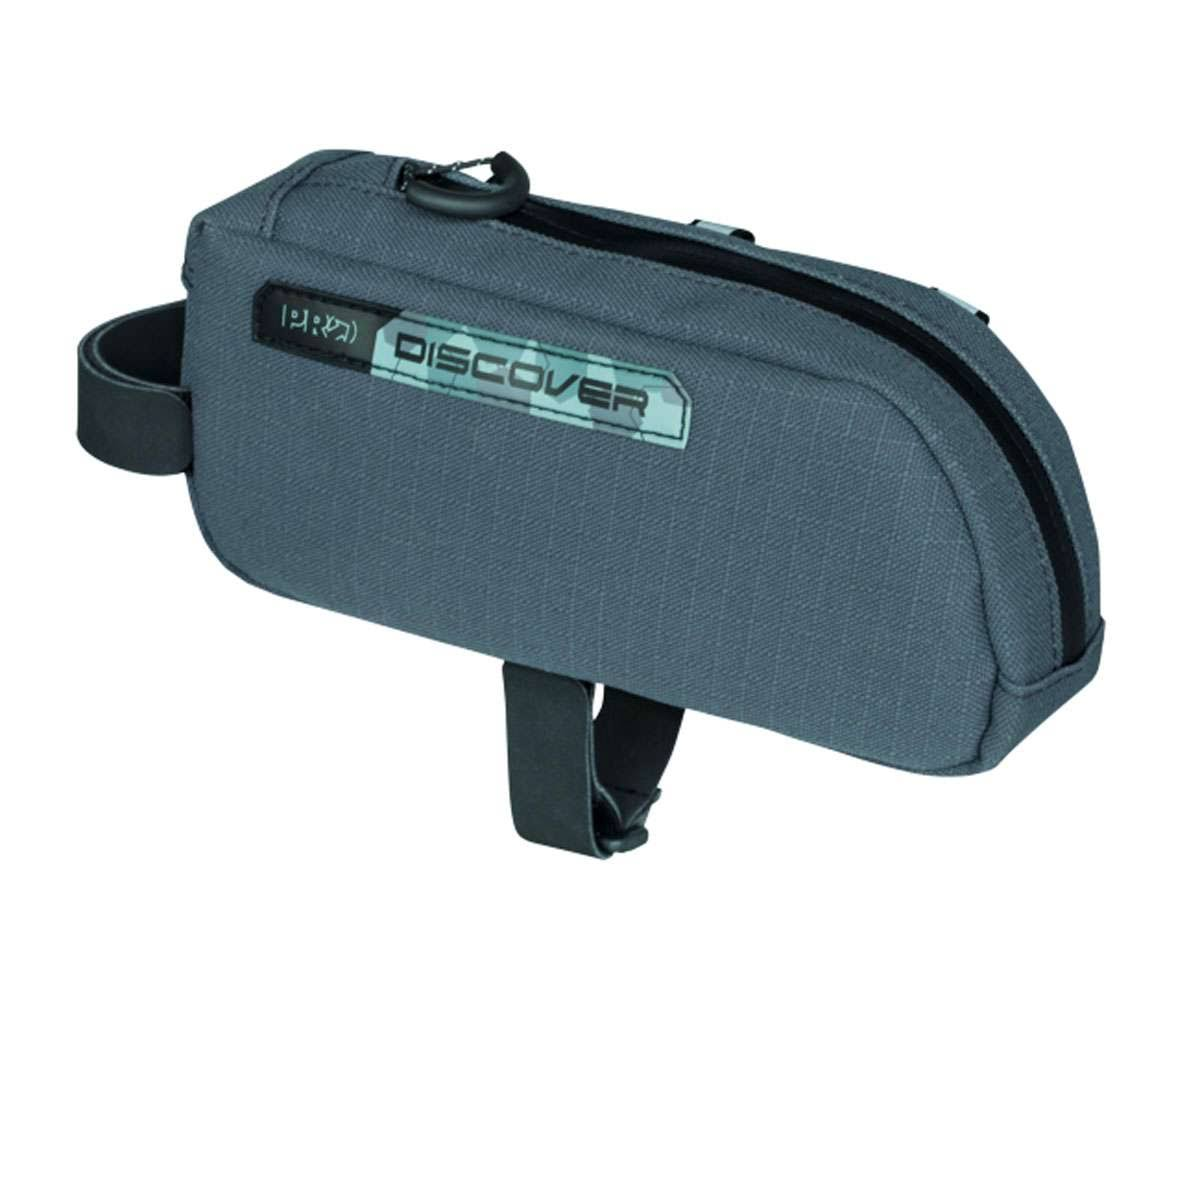 Pro Gravel Discover Bicycle Top Tube Bag - PRBA0050